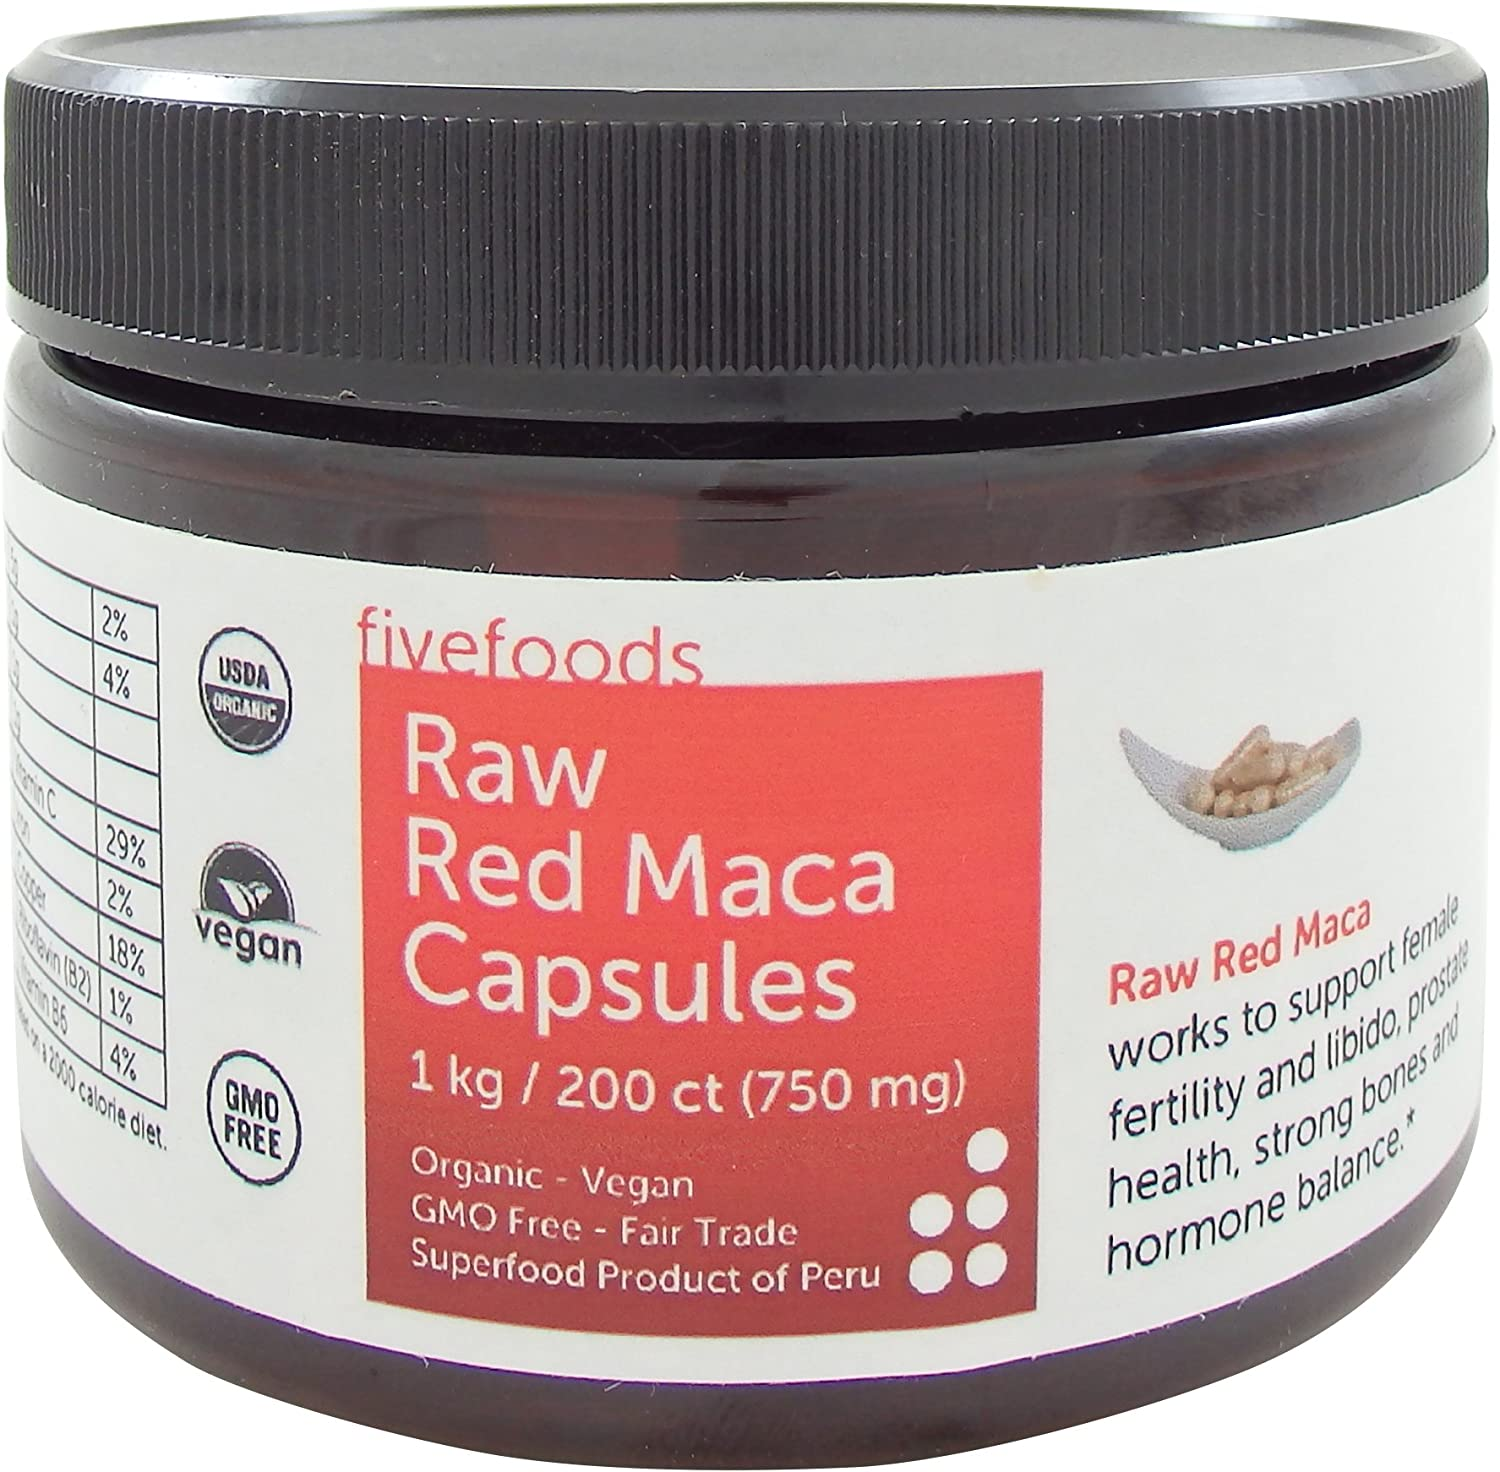 Red Maca Capsules – Raw, Organic, Fair Trade, GMO Free, Grown Traditionally in Peru – 200 Vegan Capsules, 750mg Each - Great Value!